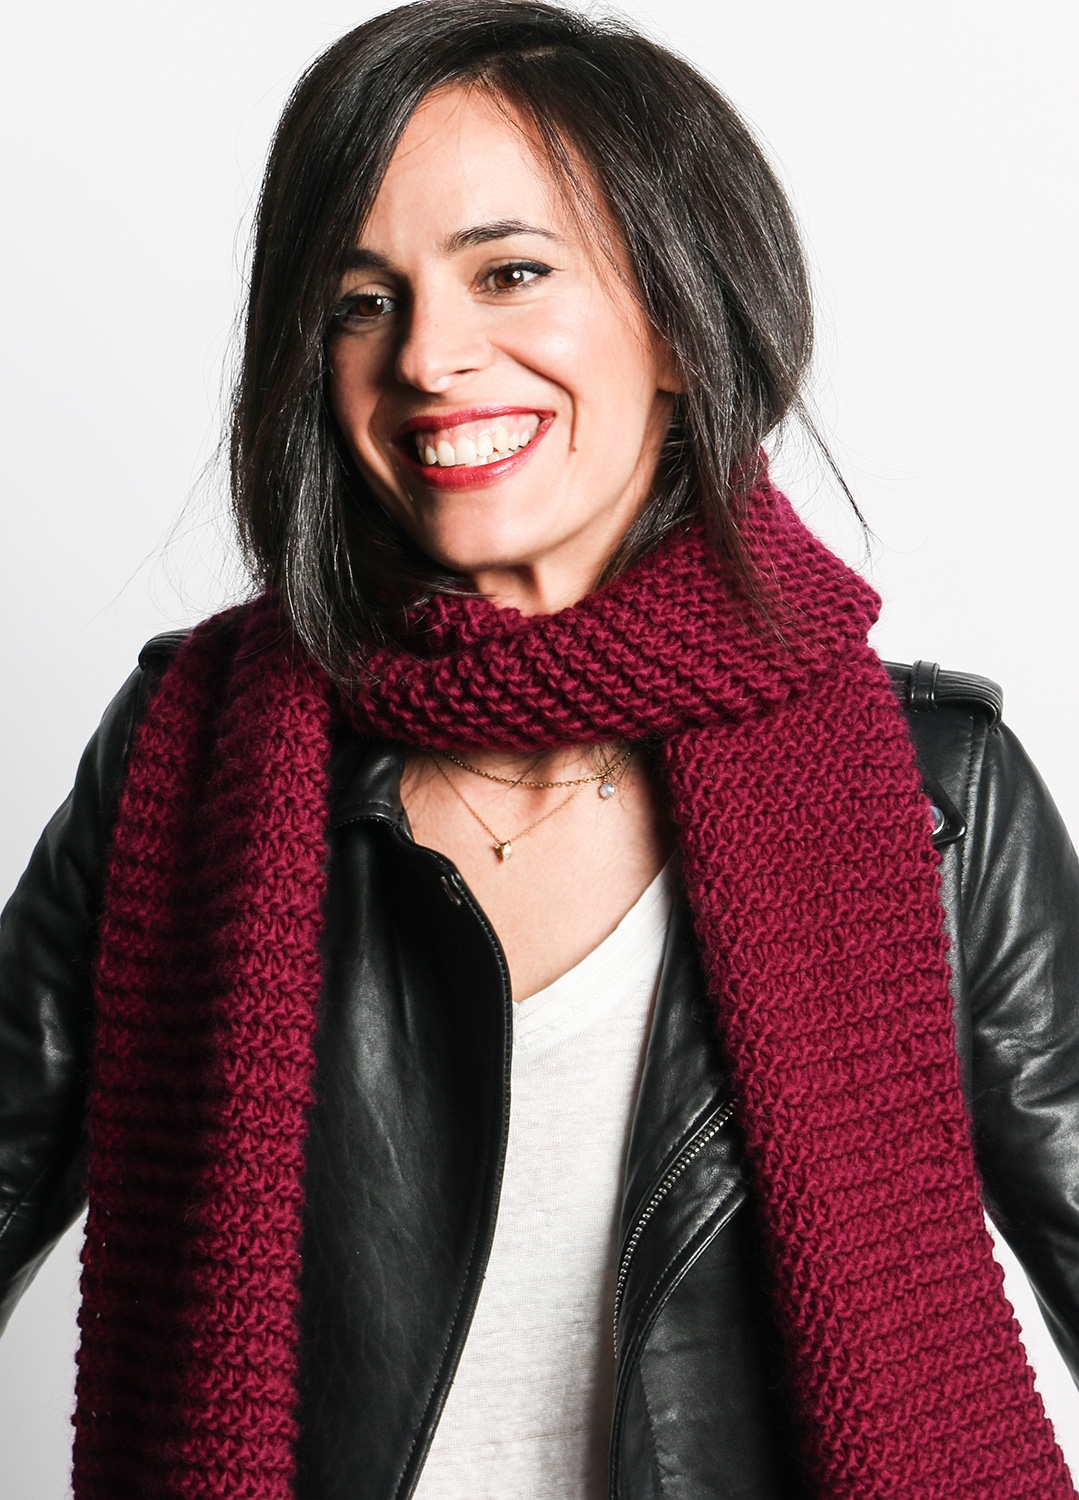 Woman wearing maroon-colored knit scarf